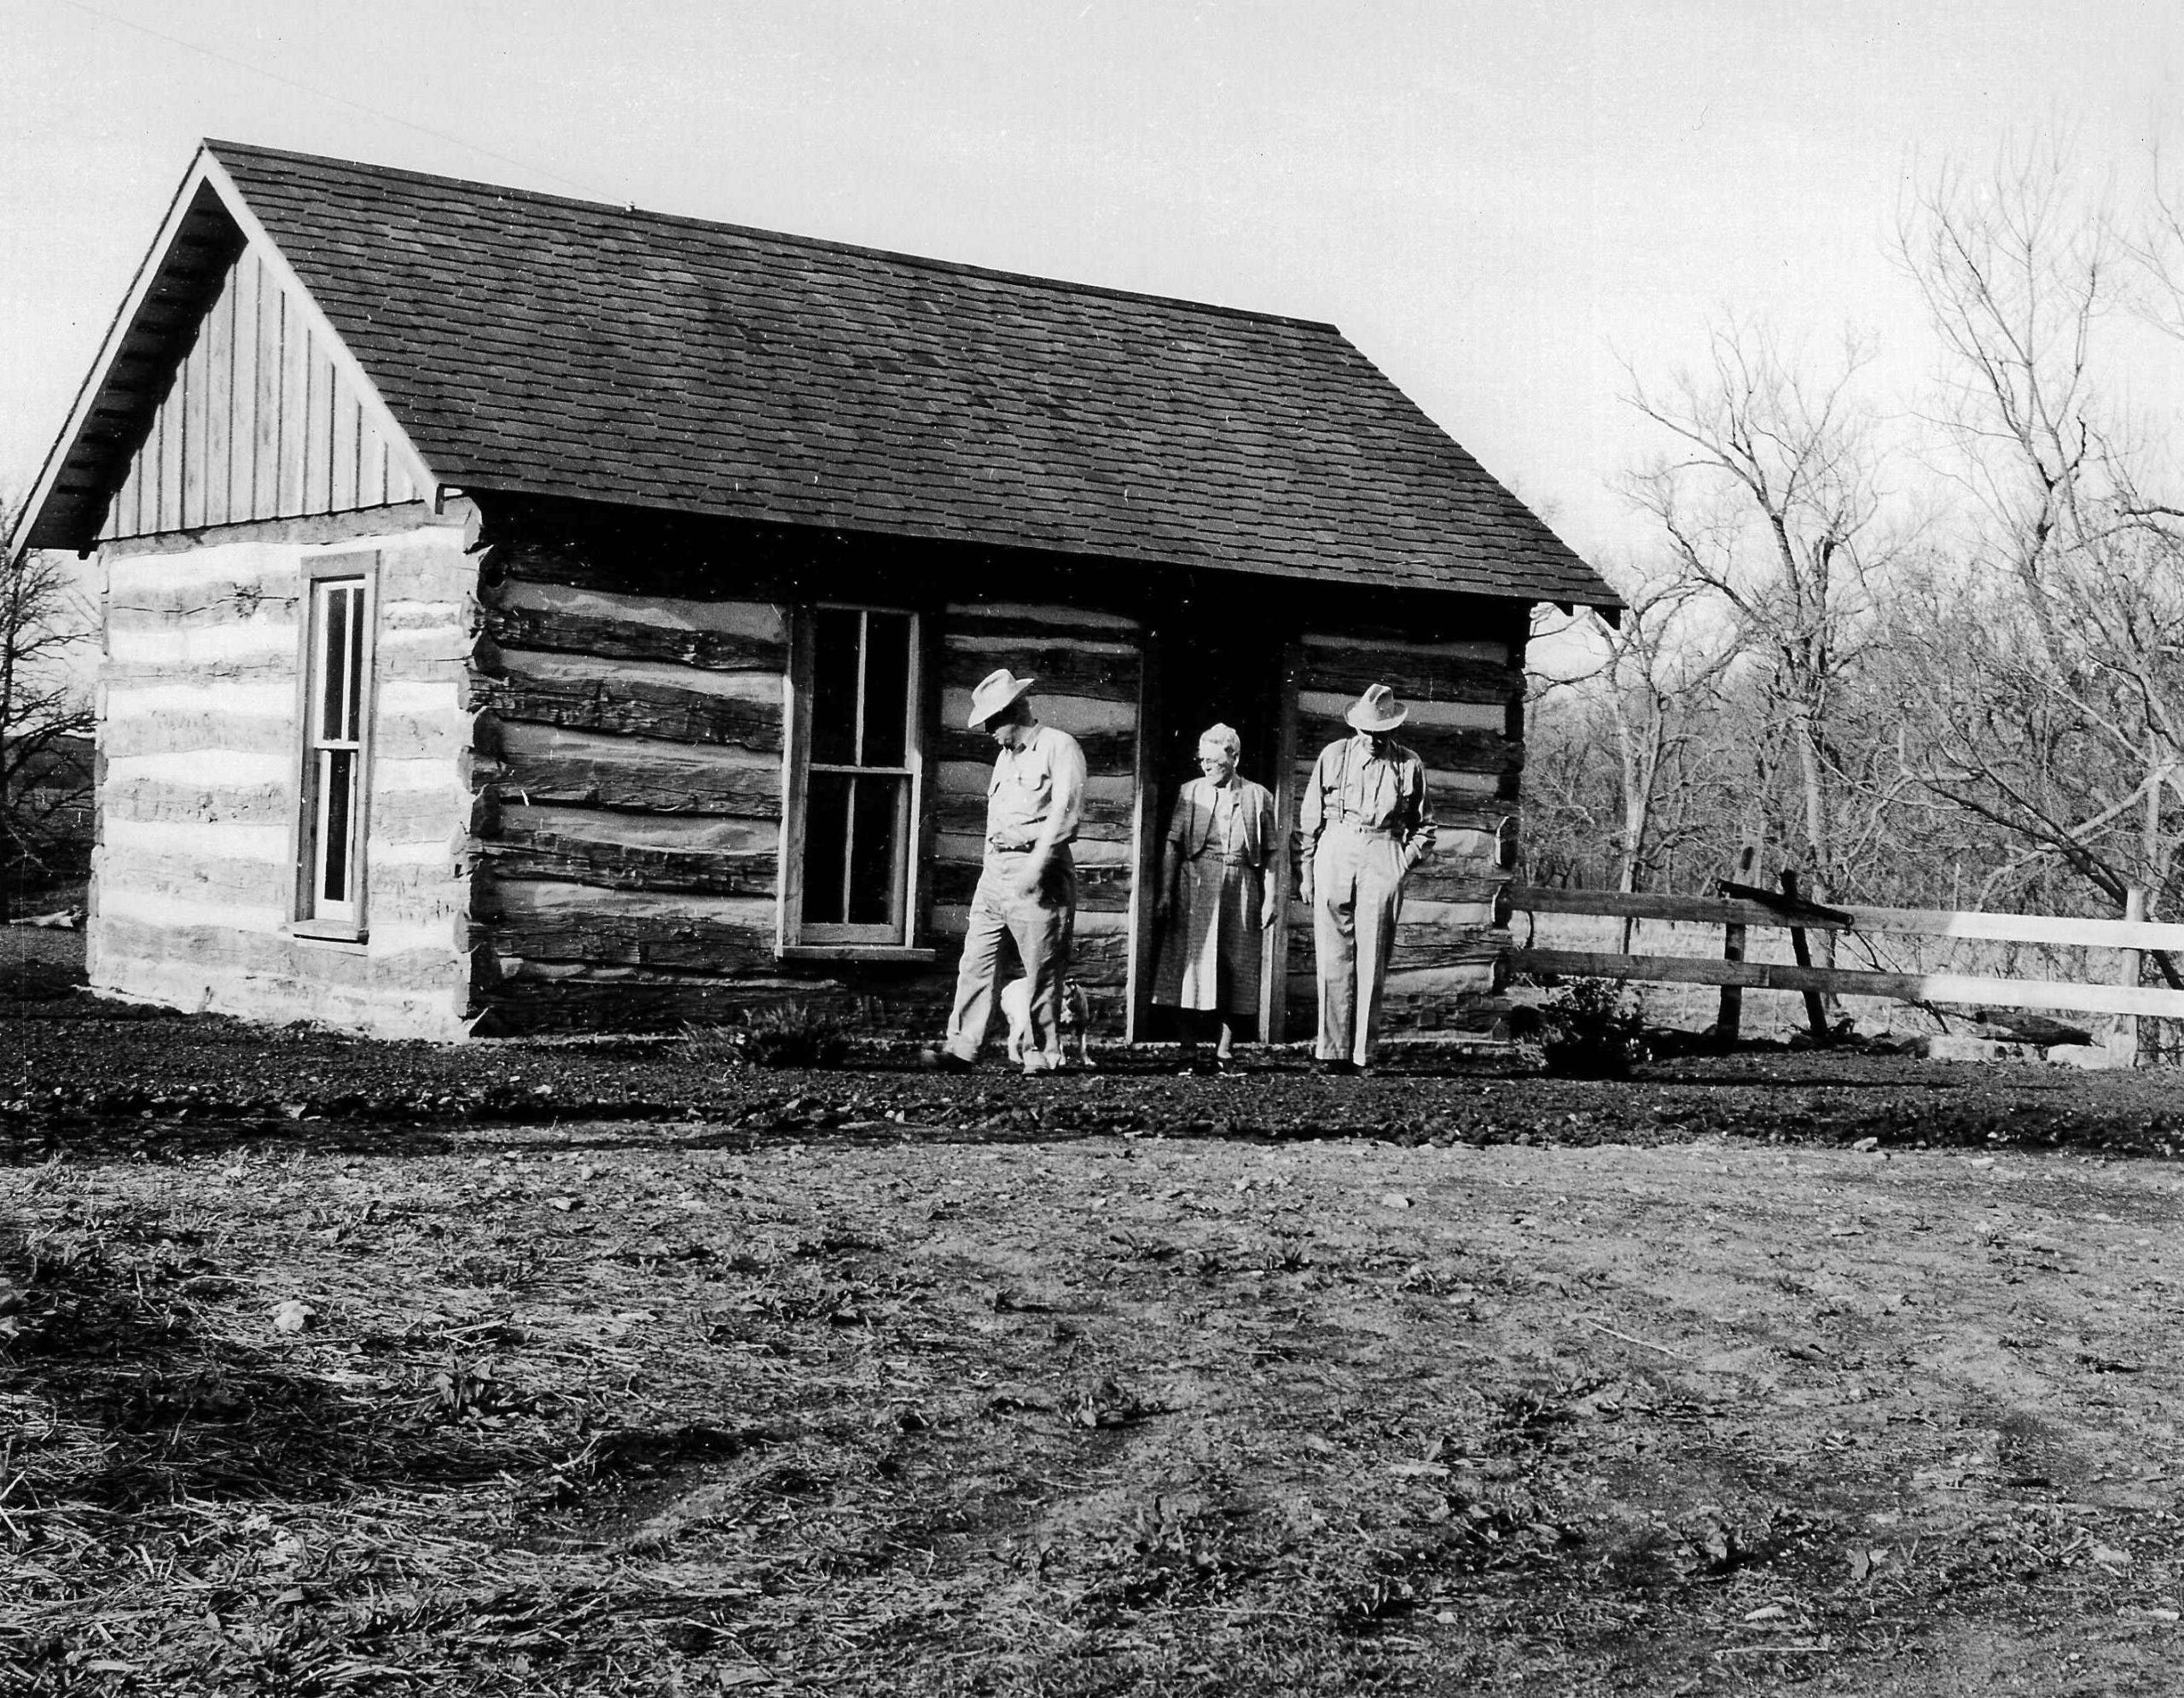 1960 – The Roglers inspect a log cabin moved in from another Rogler family's plot. The Commemorative Log Cabin was restored in 1960 from one of the original Rogler cabins built after the family settled in the area in 1859.